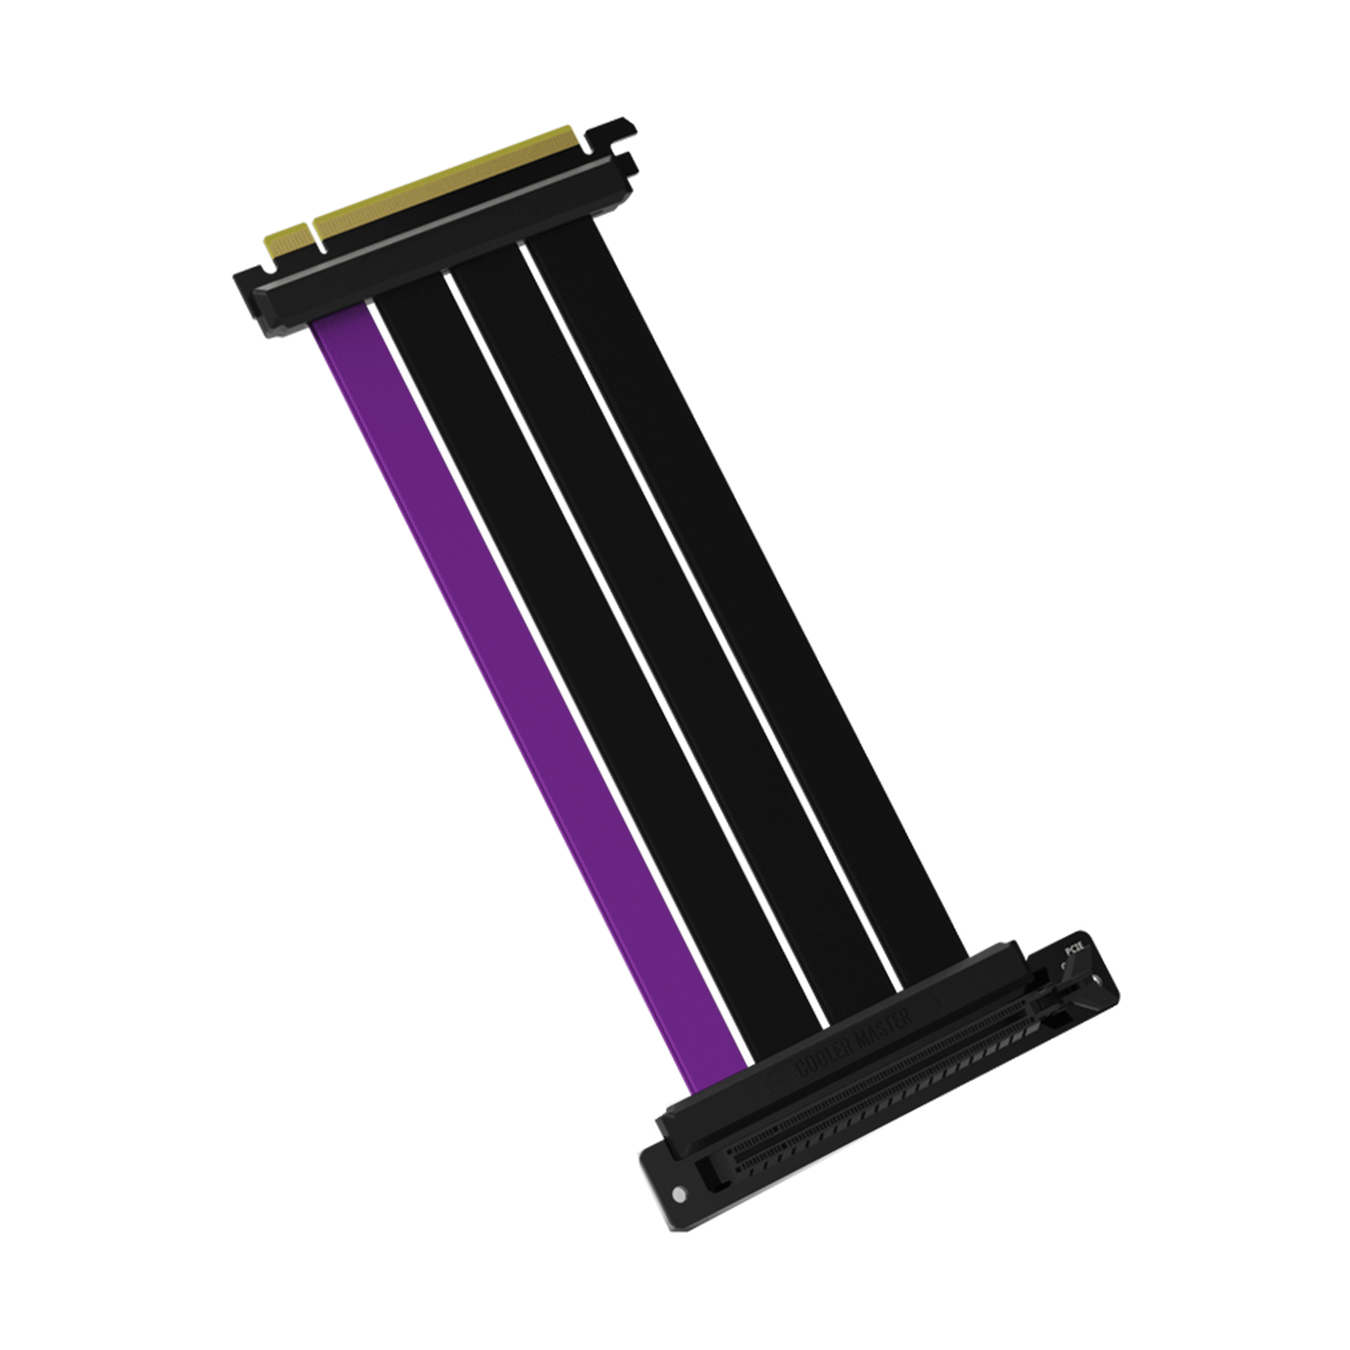 45 degree angle view of the Cooler Master MasterAccessory PCIe 4.0 Riser Cable with three matte black cables and a single purple accent cable.